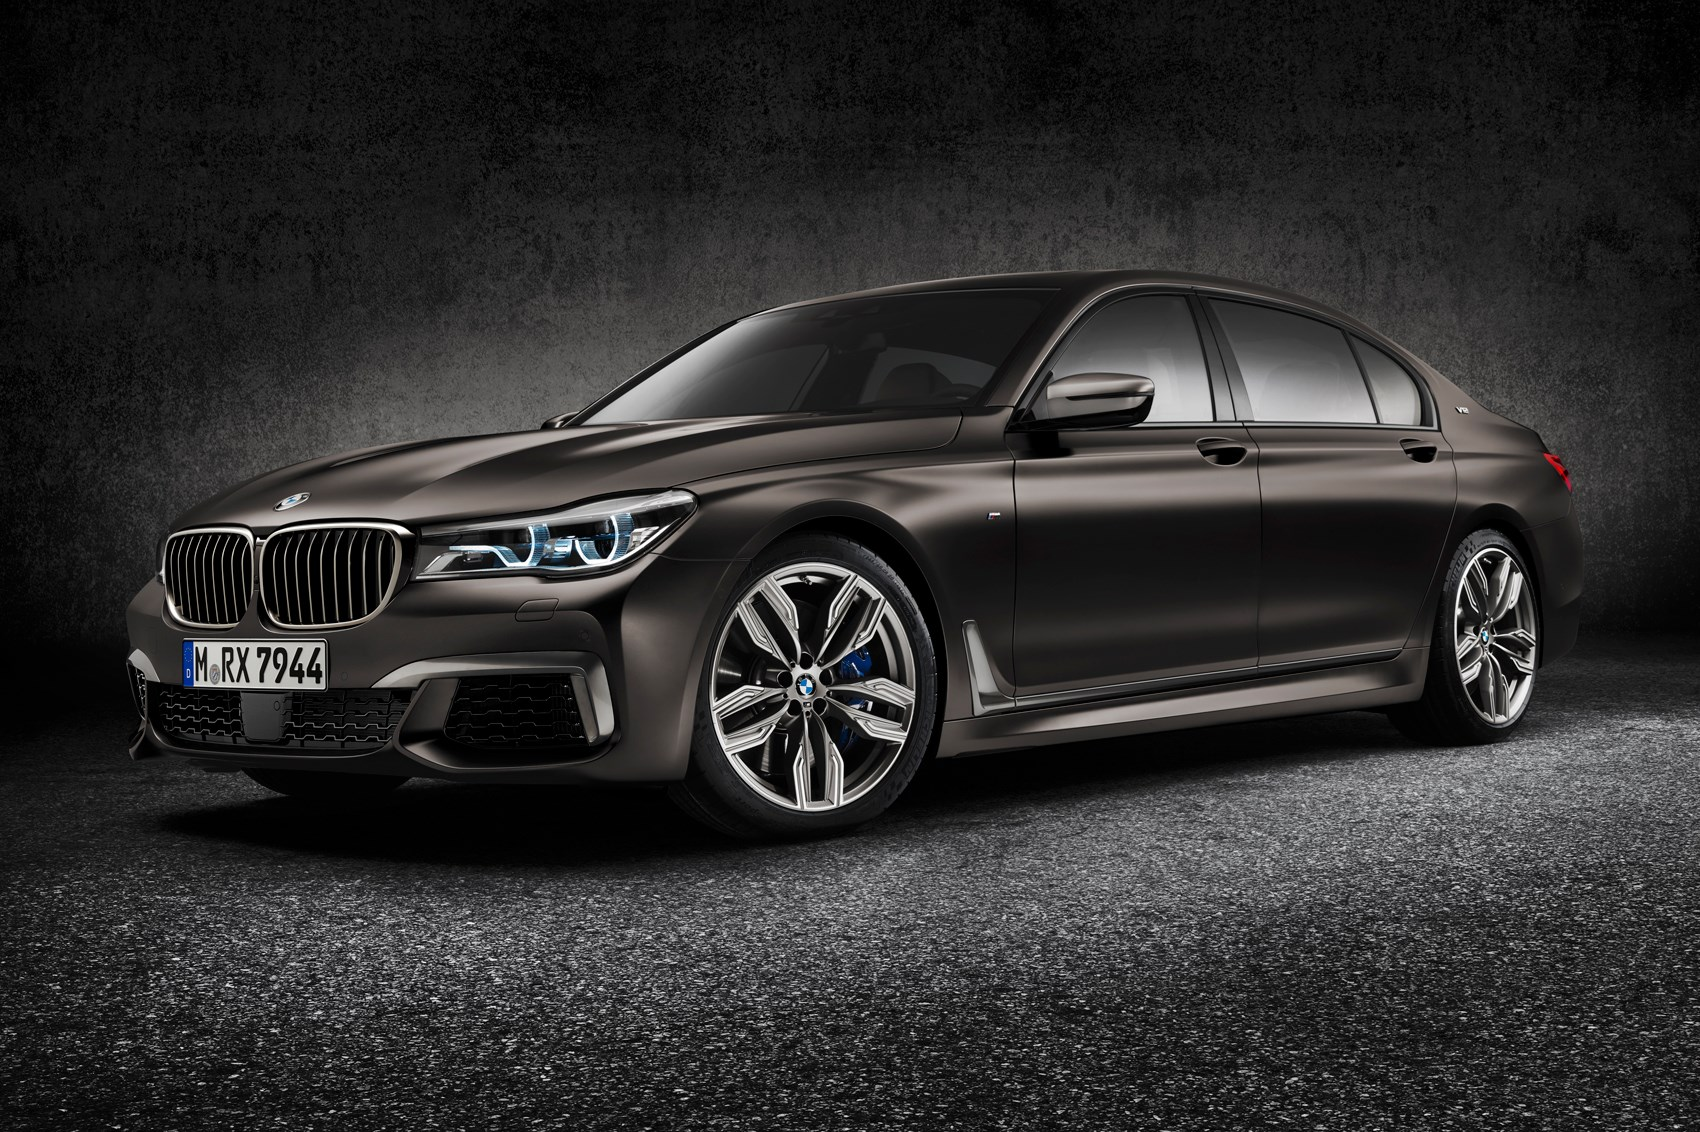 Things that like to go Mmm now include the BMW M760Li xDrive